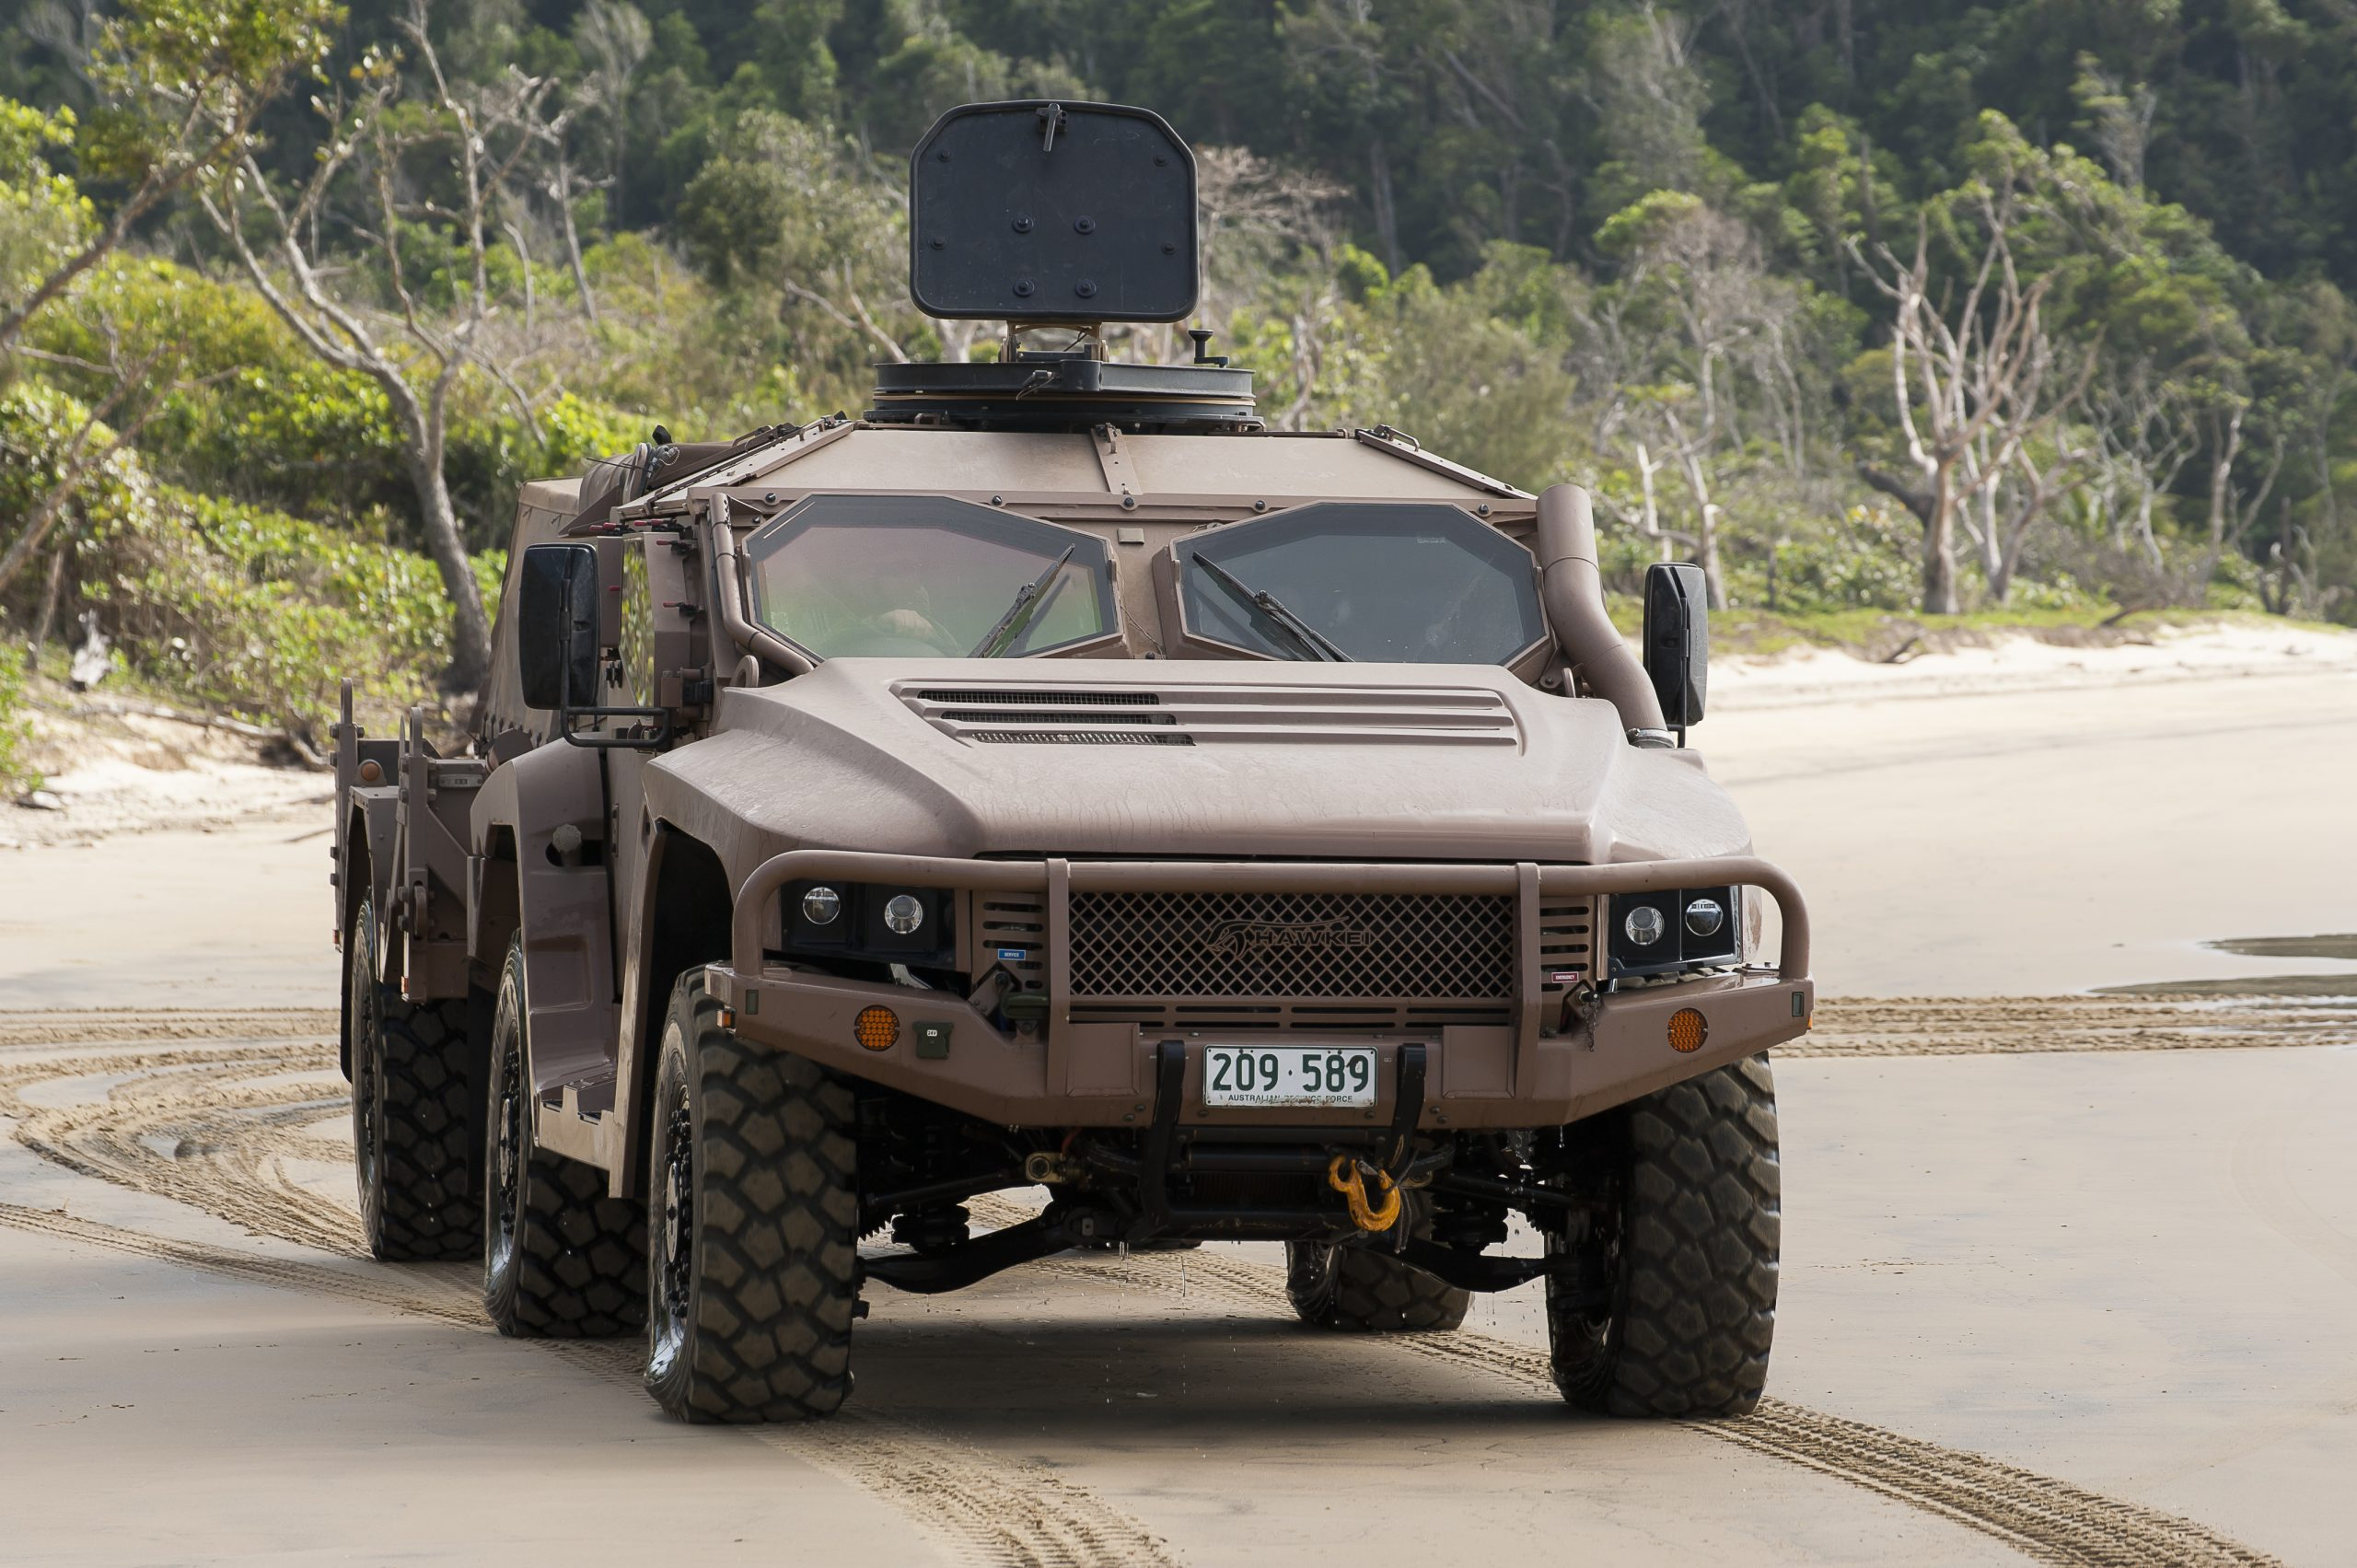 The Hawkei protected vehicle is an Australian design by Thales.